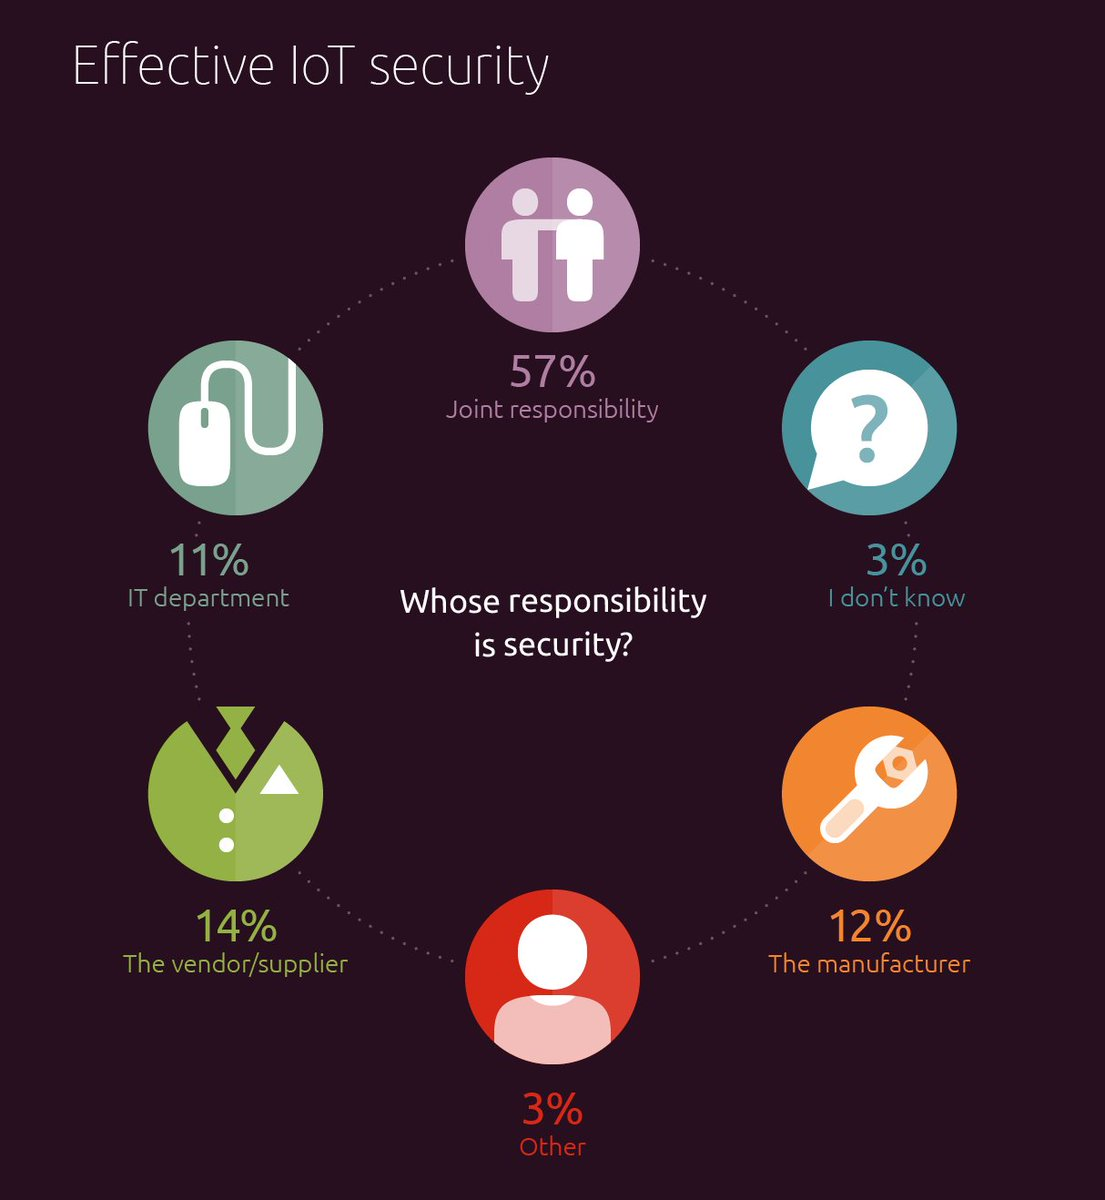 We asked professionals about responsibility in #IoT security. Here's what we found.